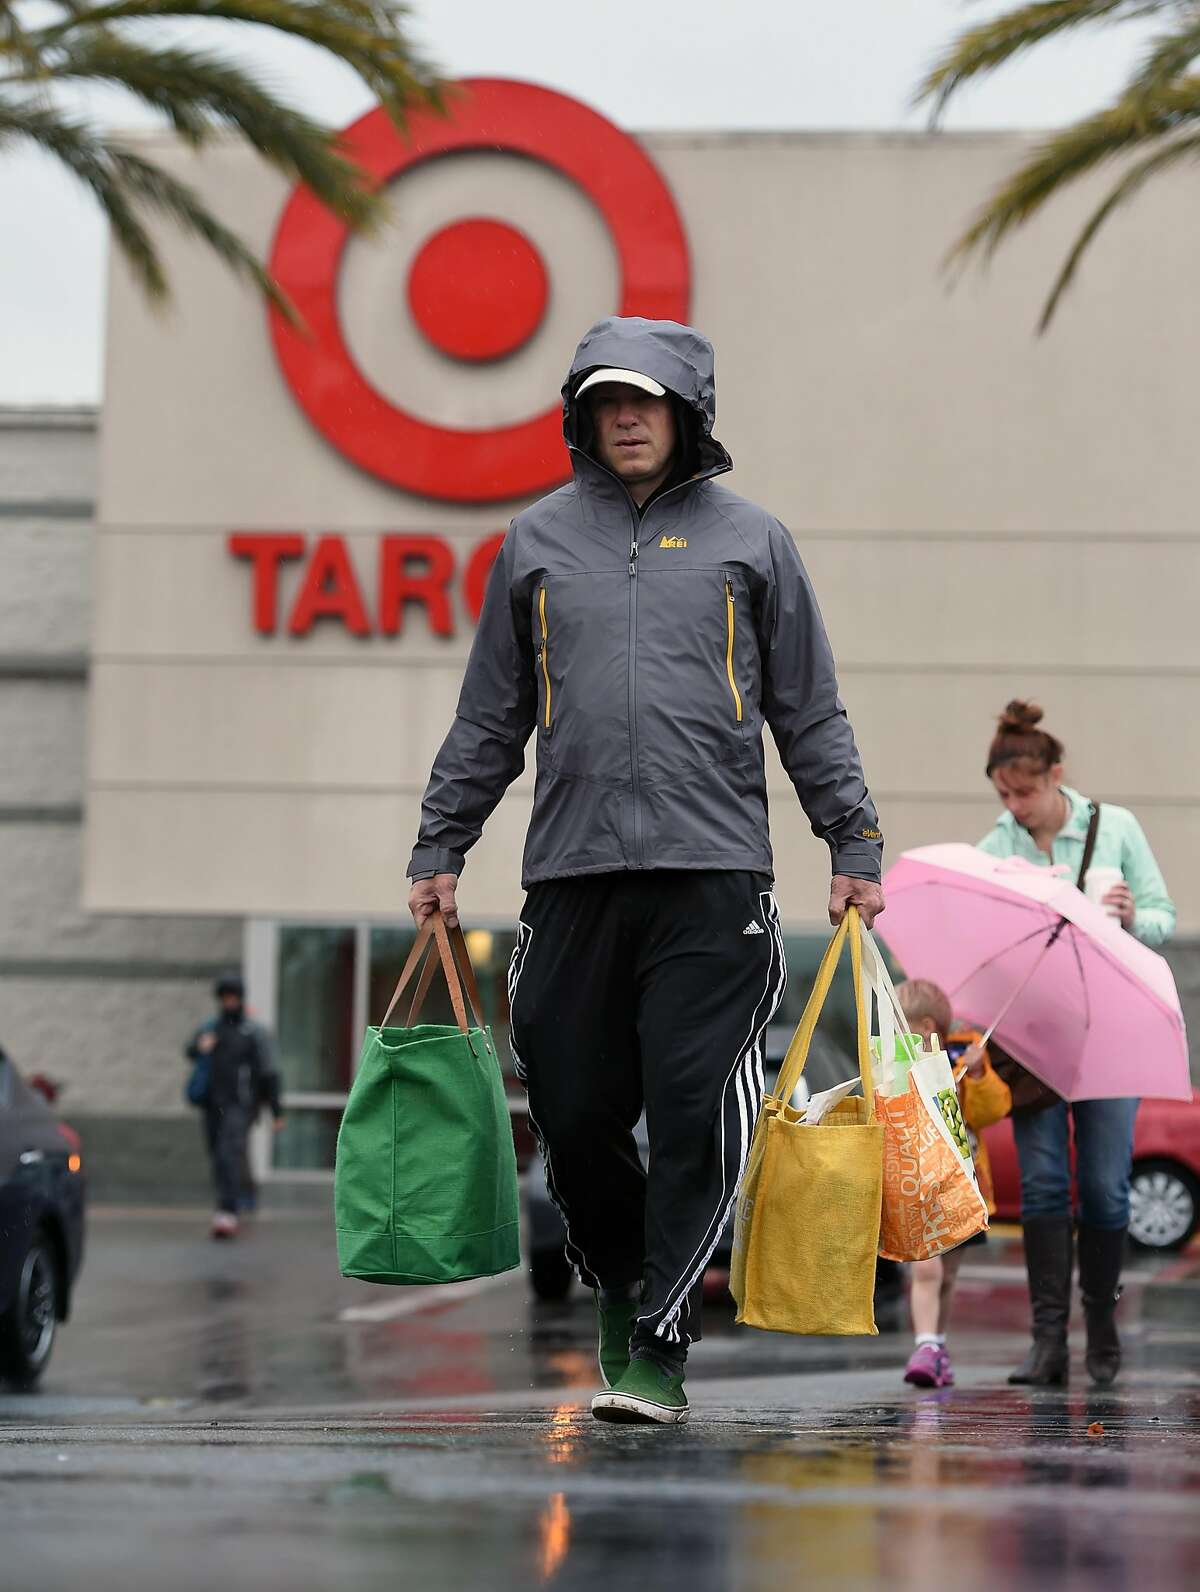 Shoppers walk in the rain outside a Target store in Emeryville, Calif. on November 19, 2016.